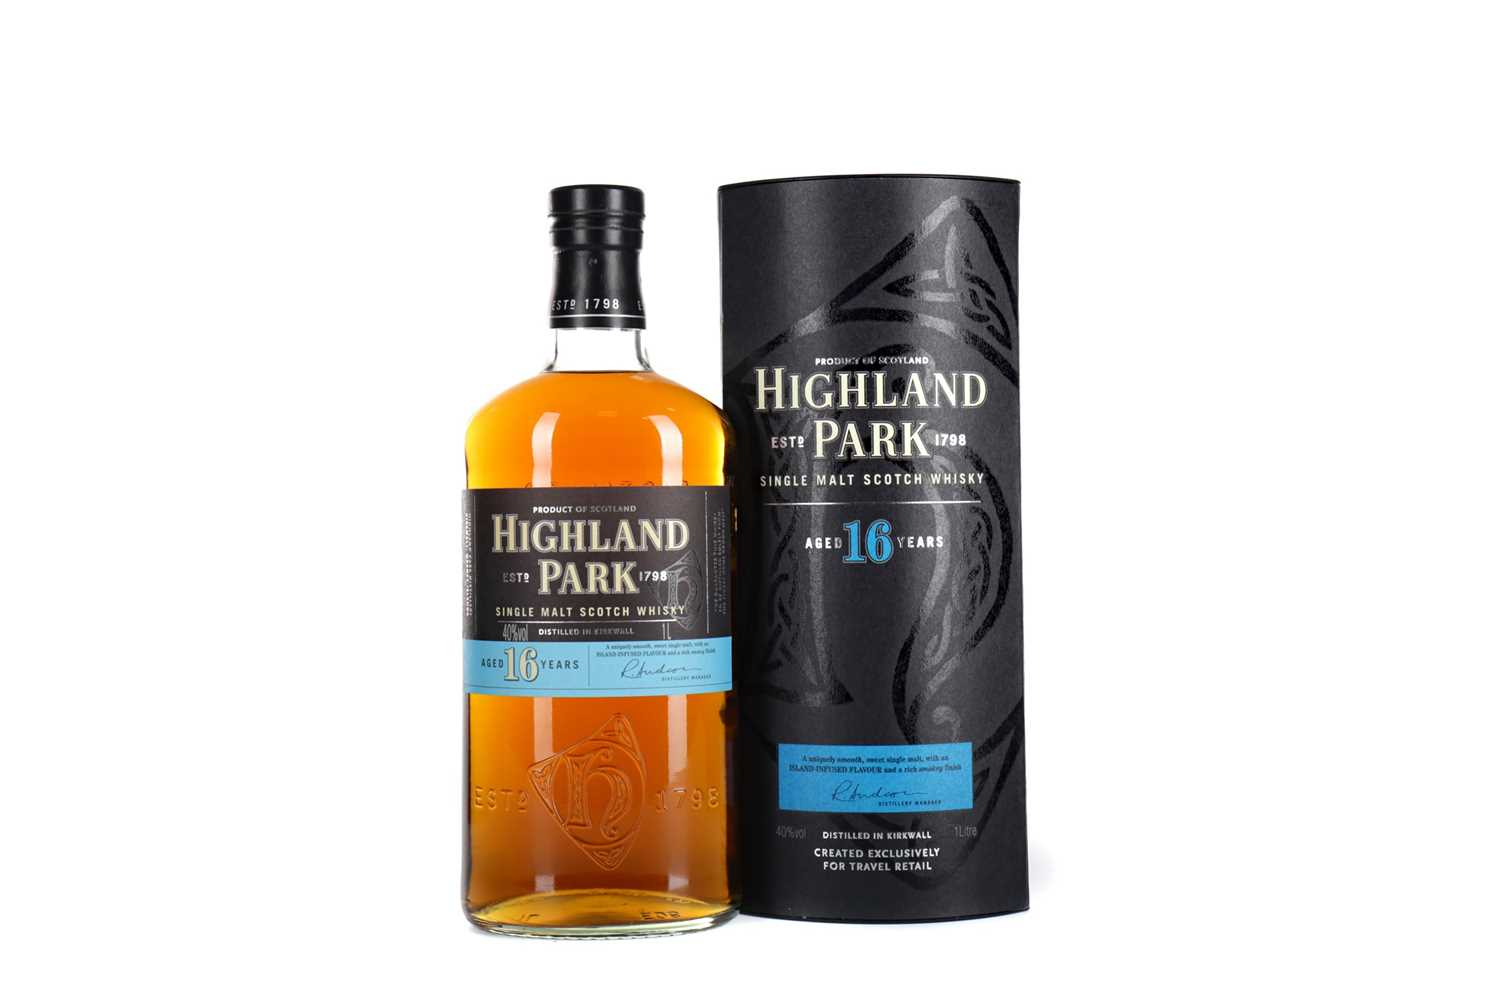 Lot 39 - ONE LITRE OF HIGHLAND PARK AGED 16 YEARS